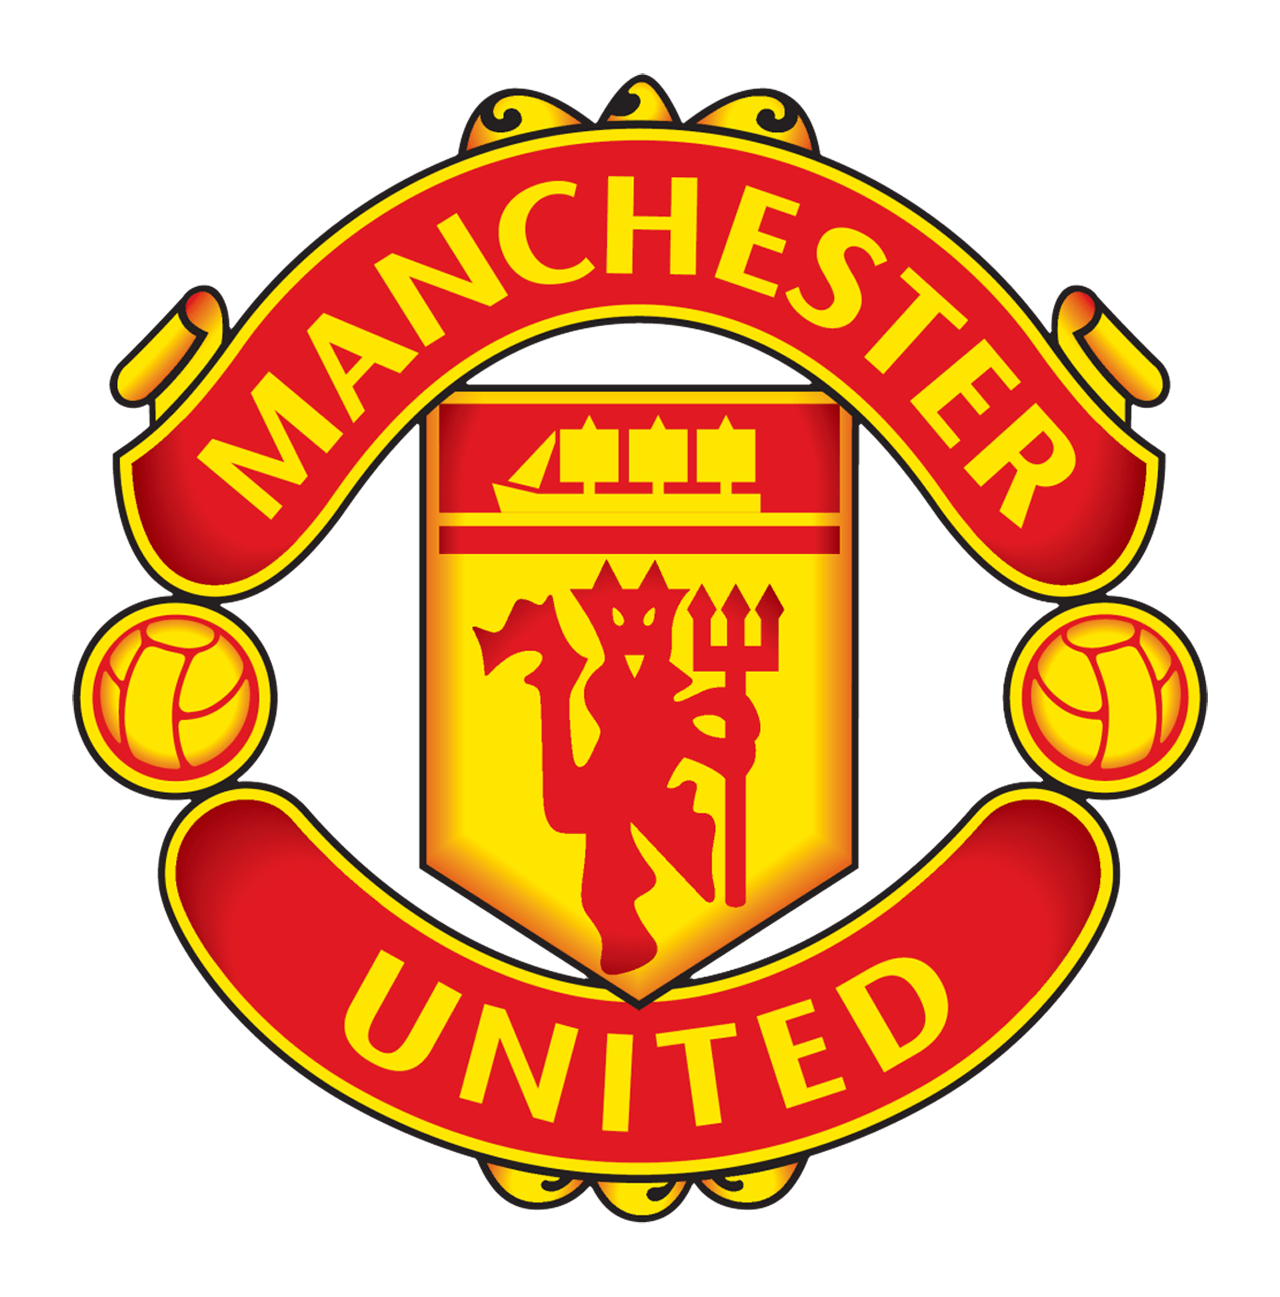 manchester united logo transparent png stickpng rh stickpng com manchester united logo coloring pages manchester united logo meaning